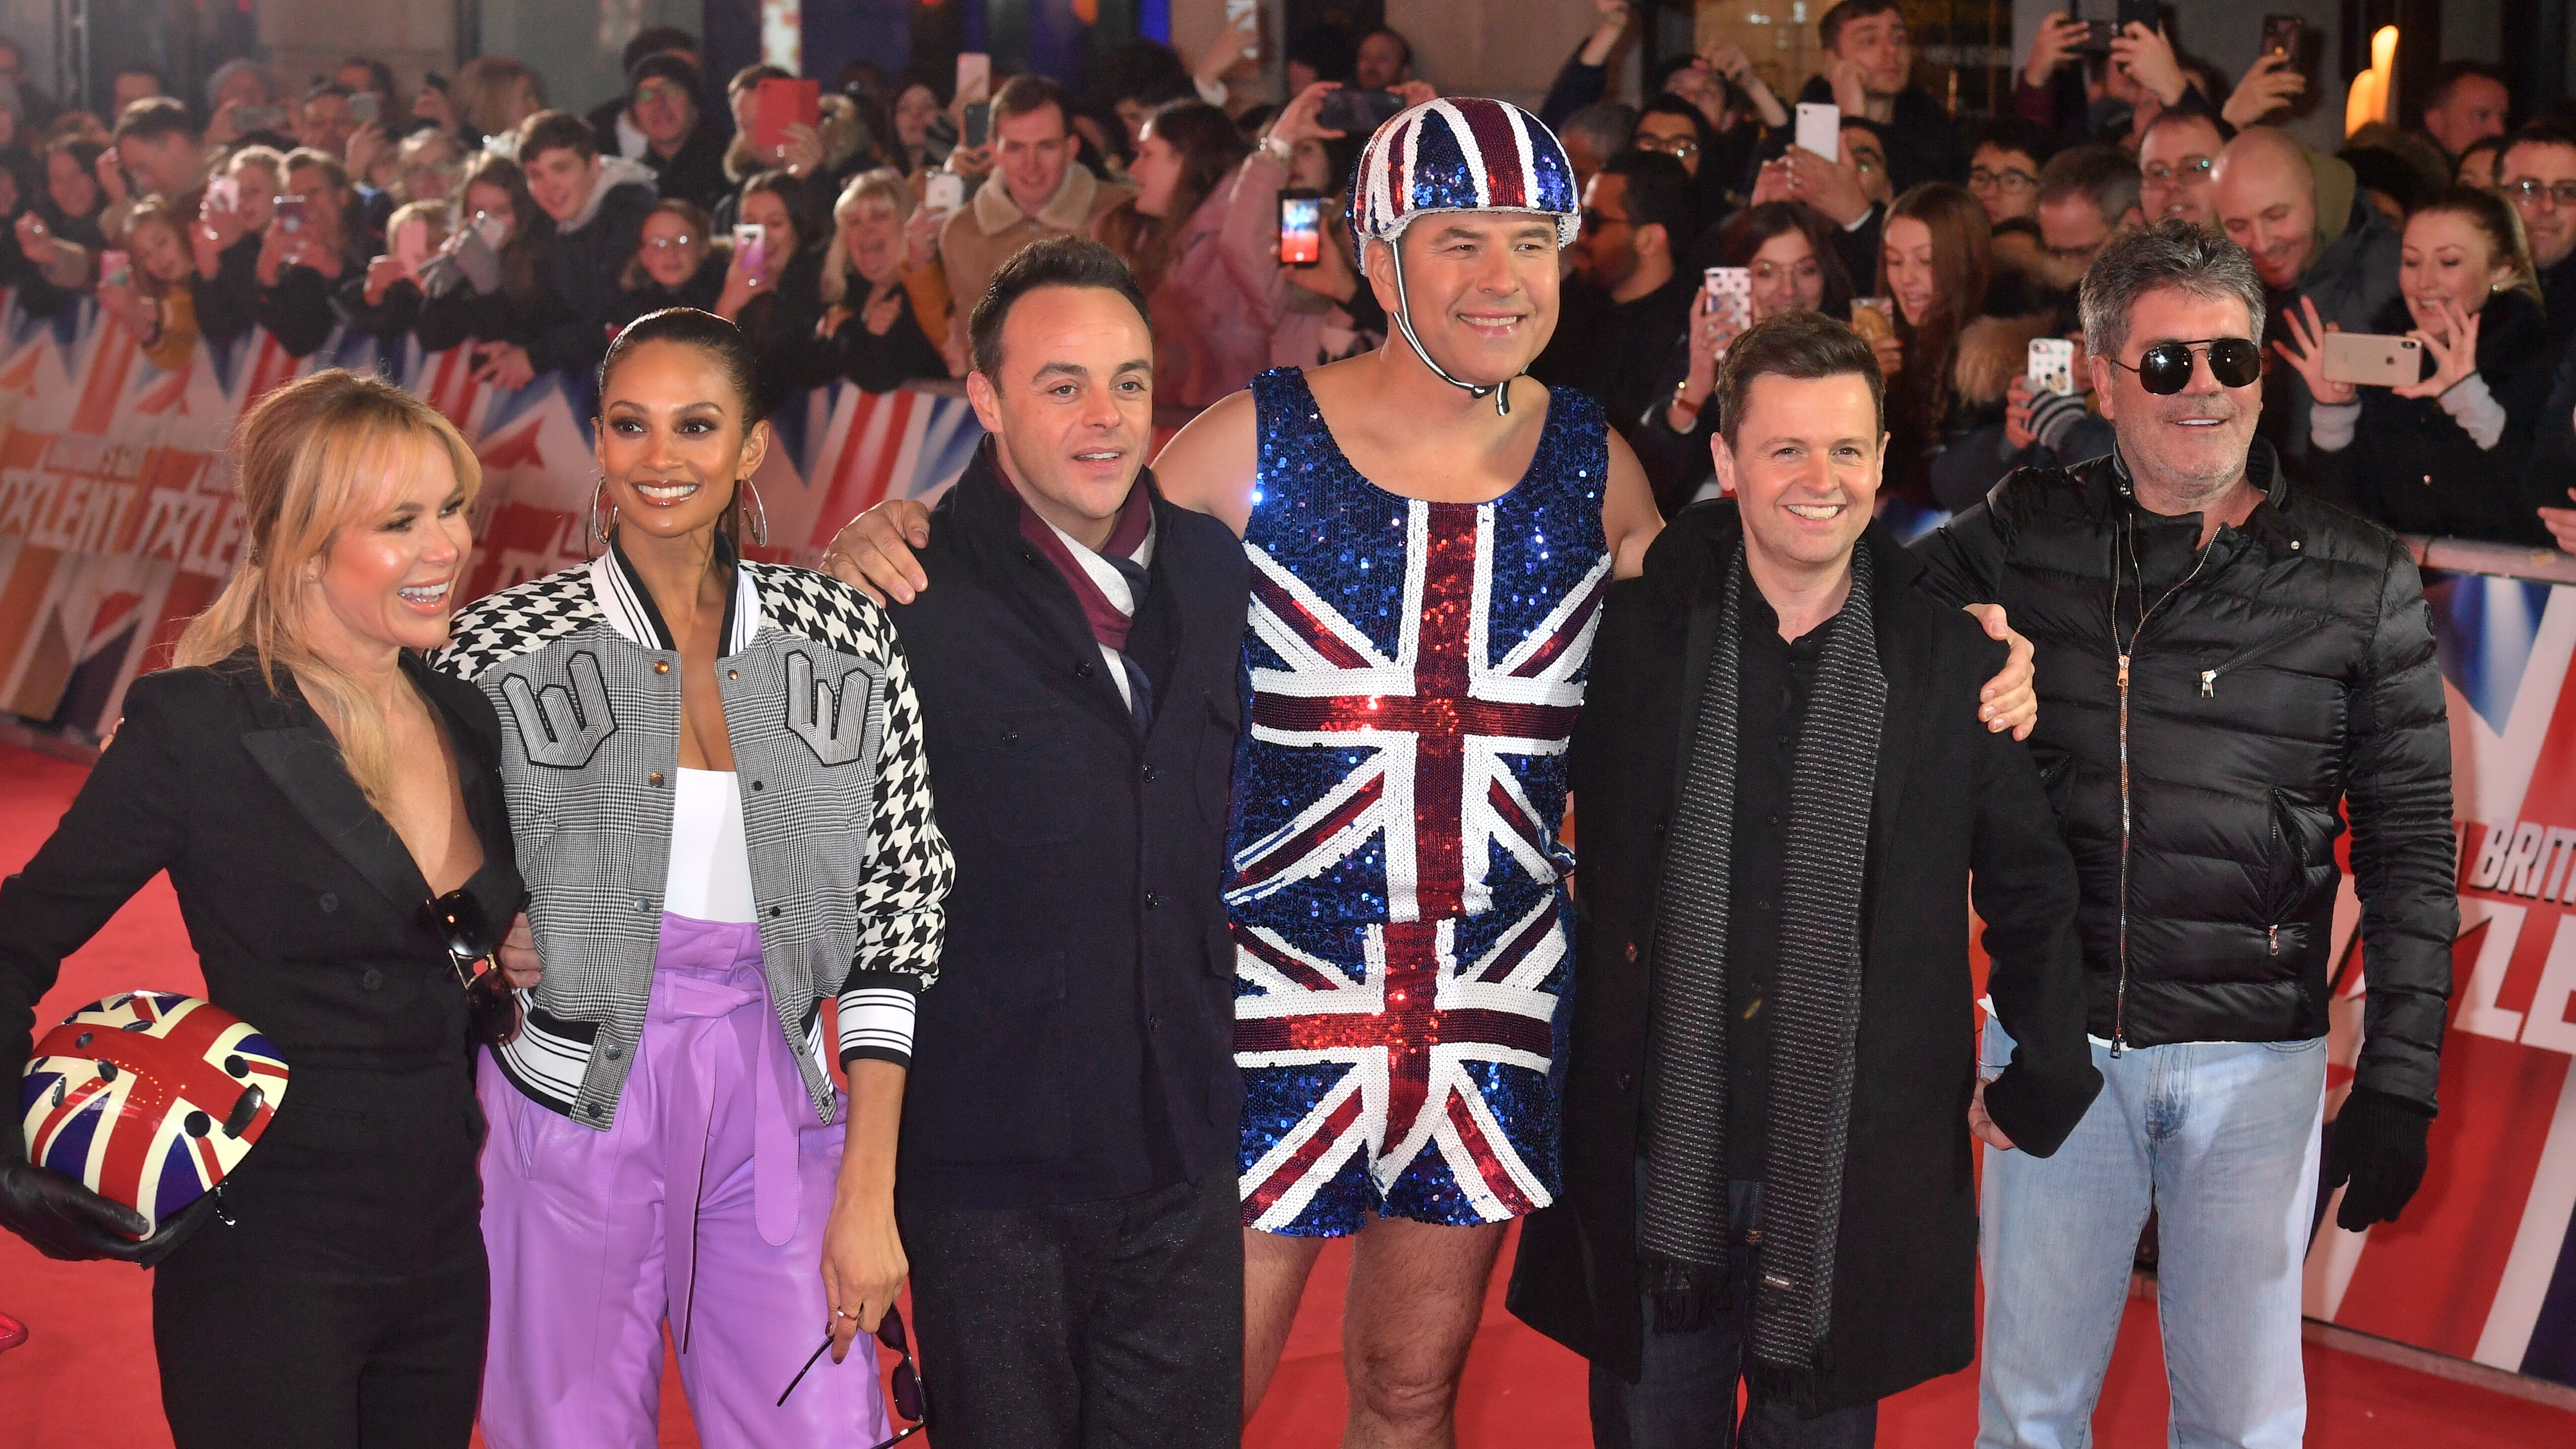 Norwich pensioner wins Britain Got Talent with tribute to late wife